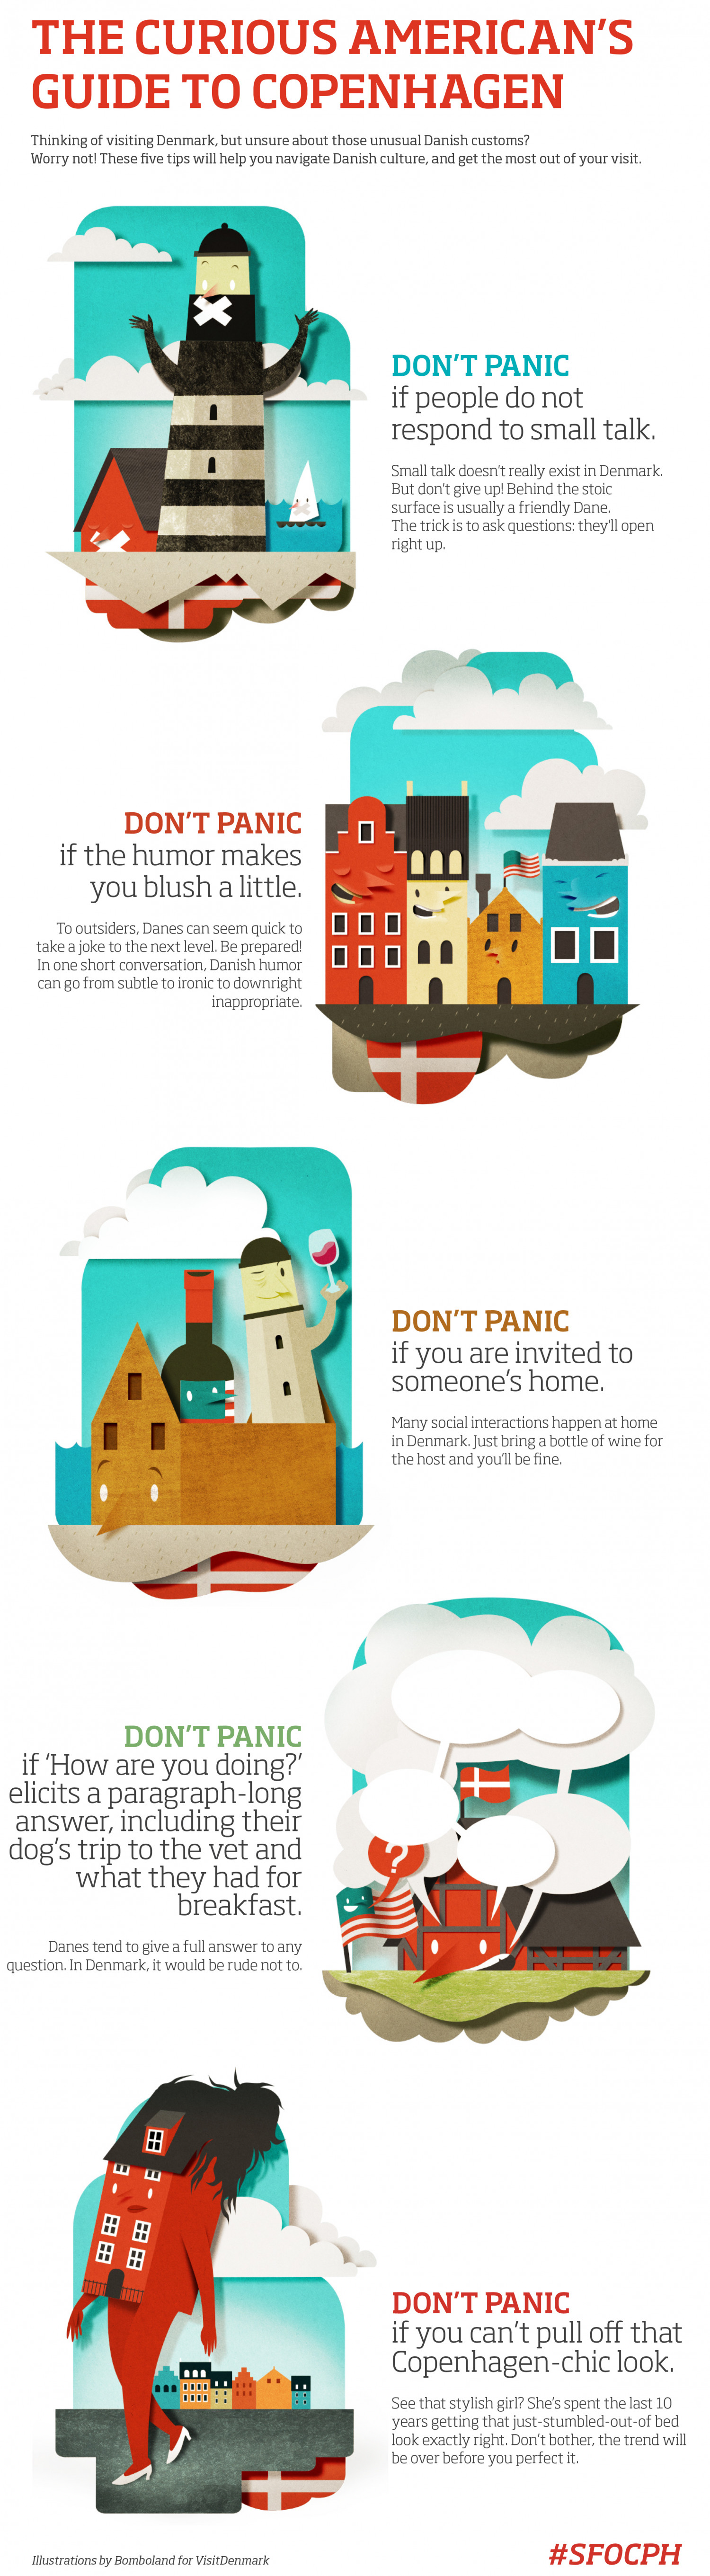 The Curious American Traveler's Guide to Copenhagen Infographic